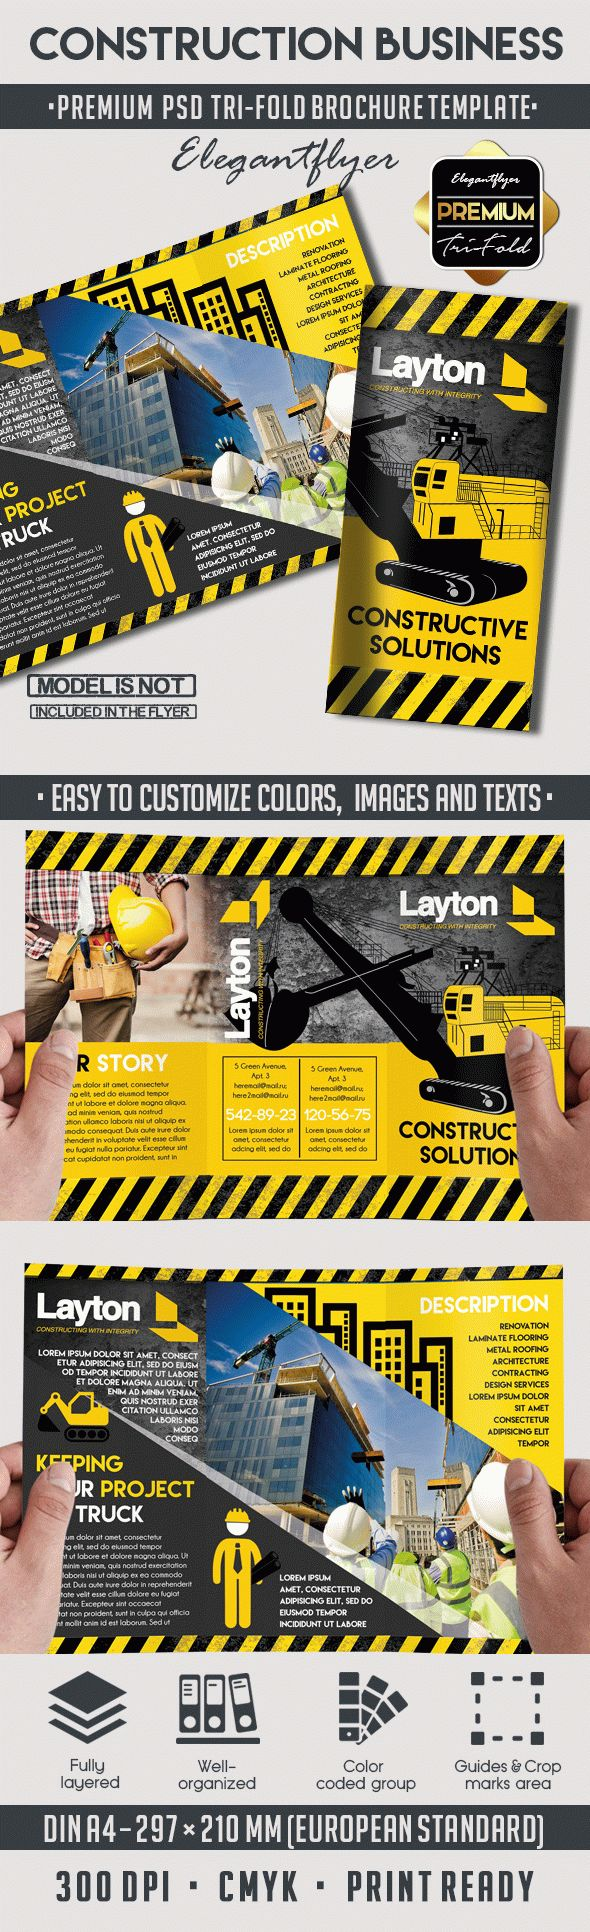 Construction Business – Premium Tri-Fold PSD Brochure Template